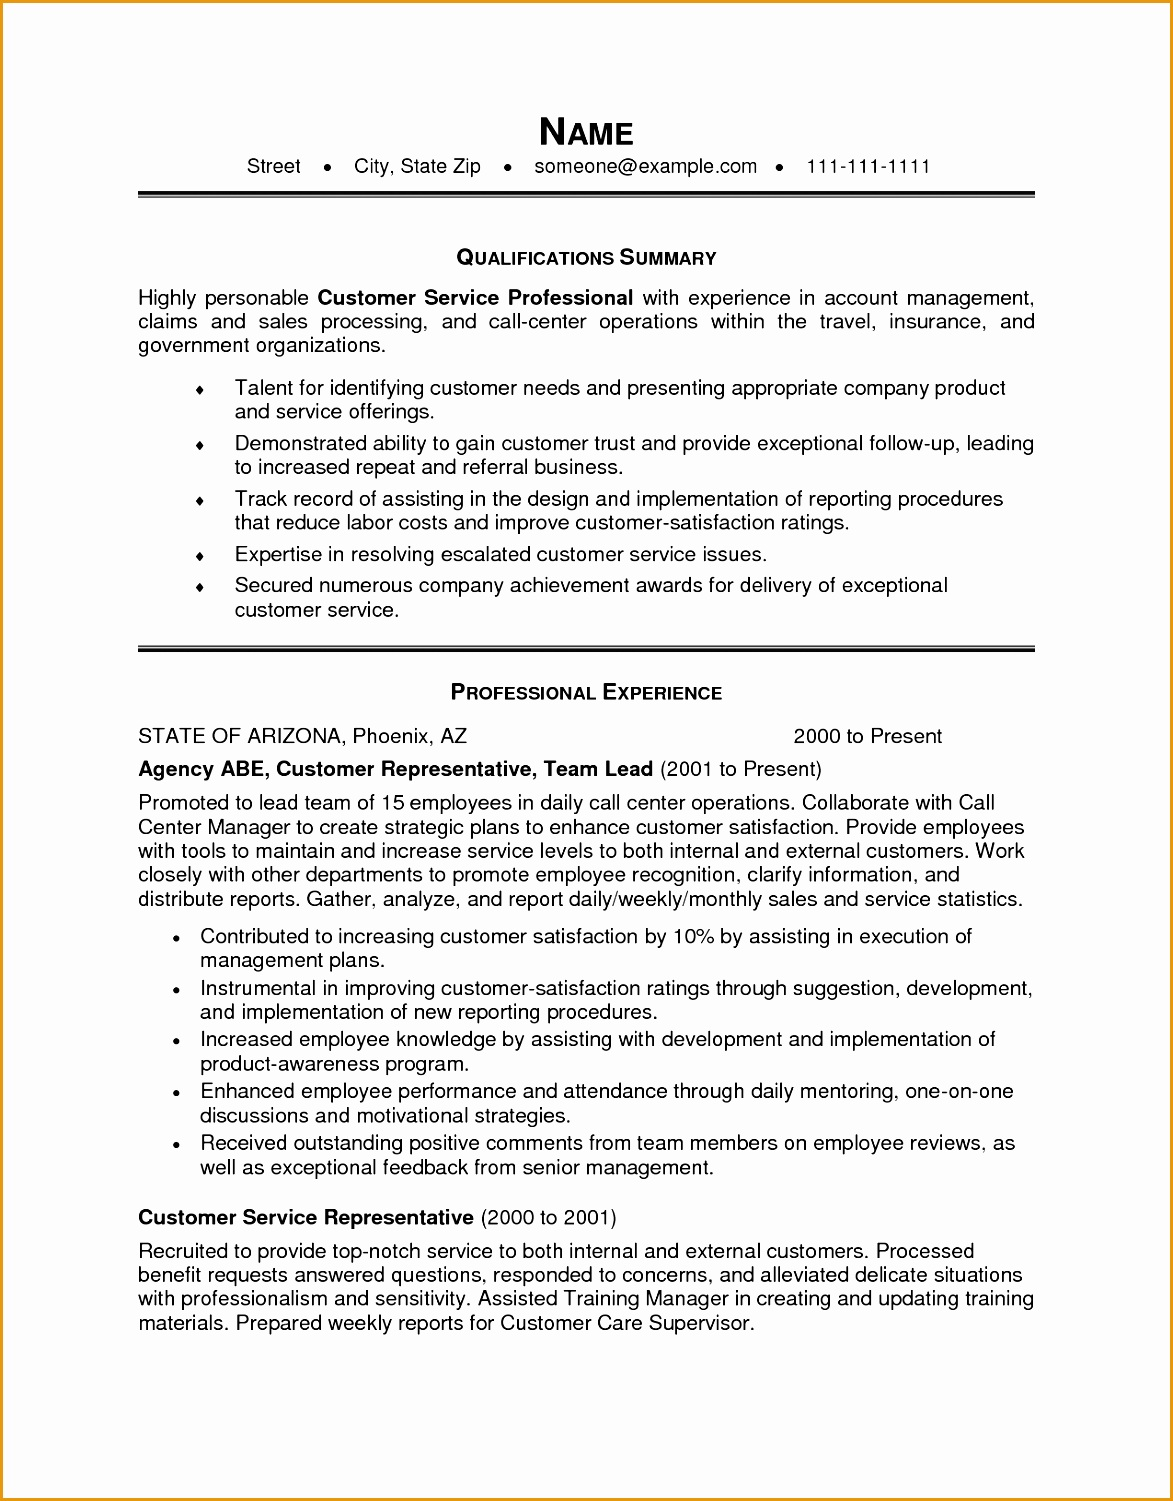 Customer Service Resume Objective Examples 9 Professional Acting Resume Free Samples Examples